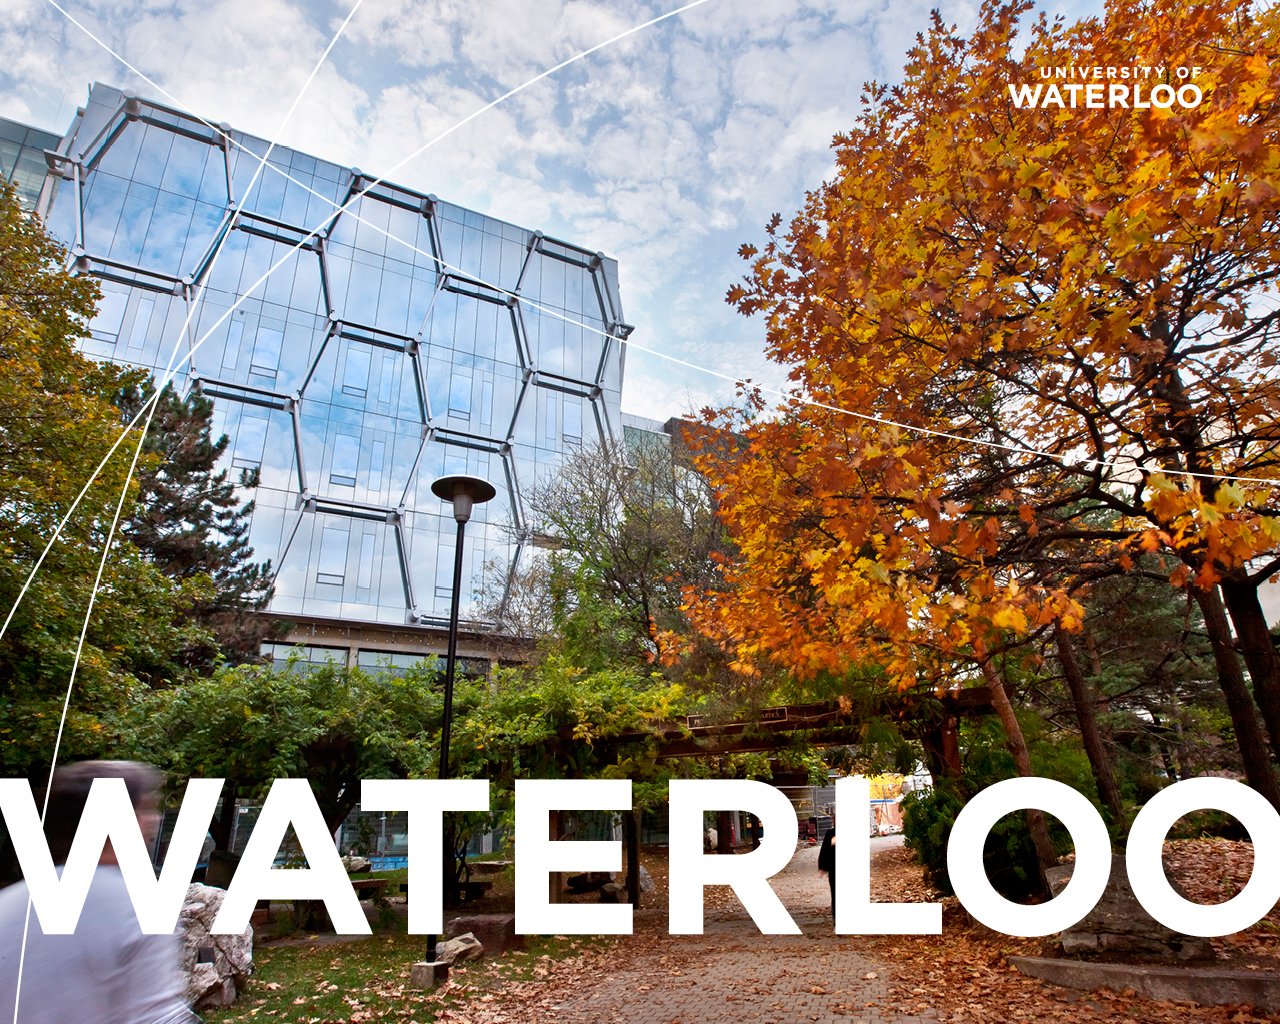 University of Waterloo wallpapers | Support Waterloo ...